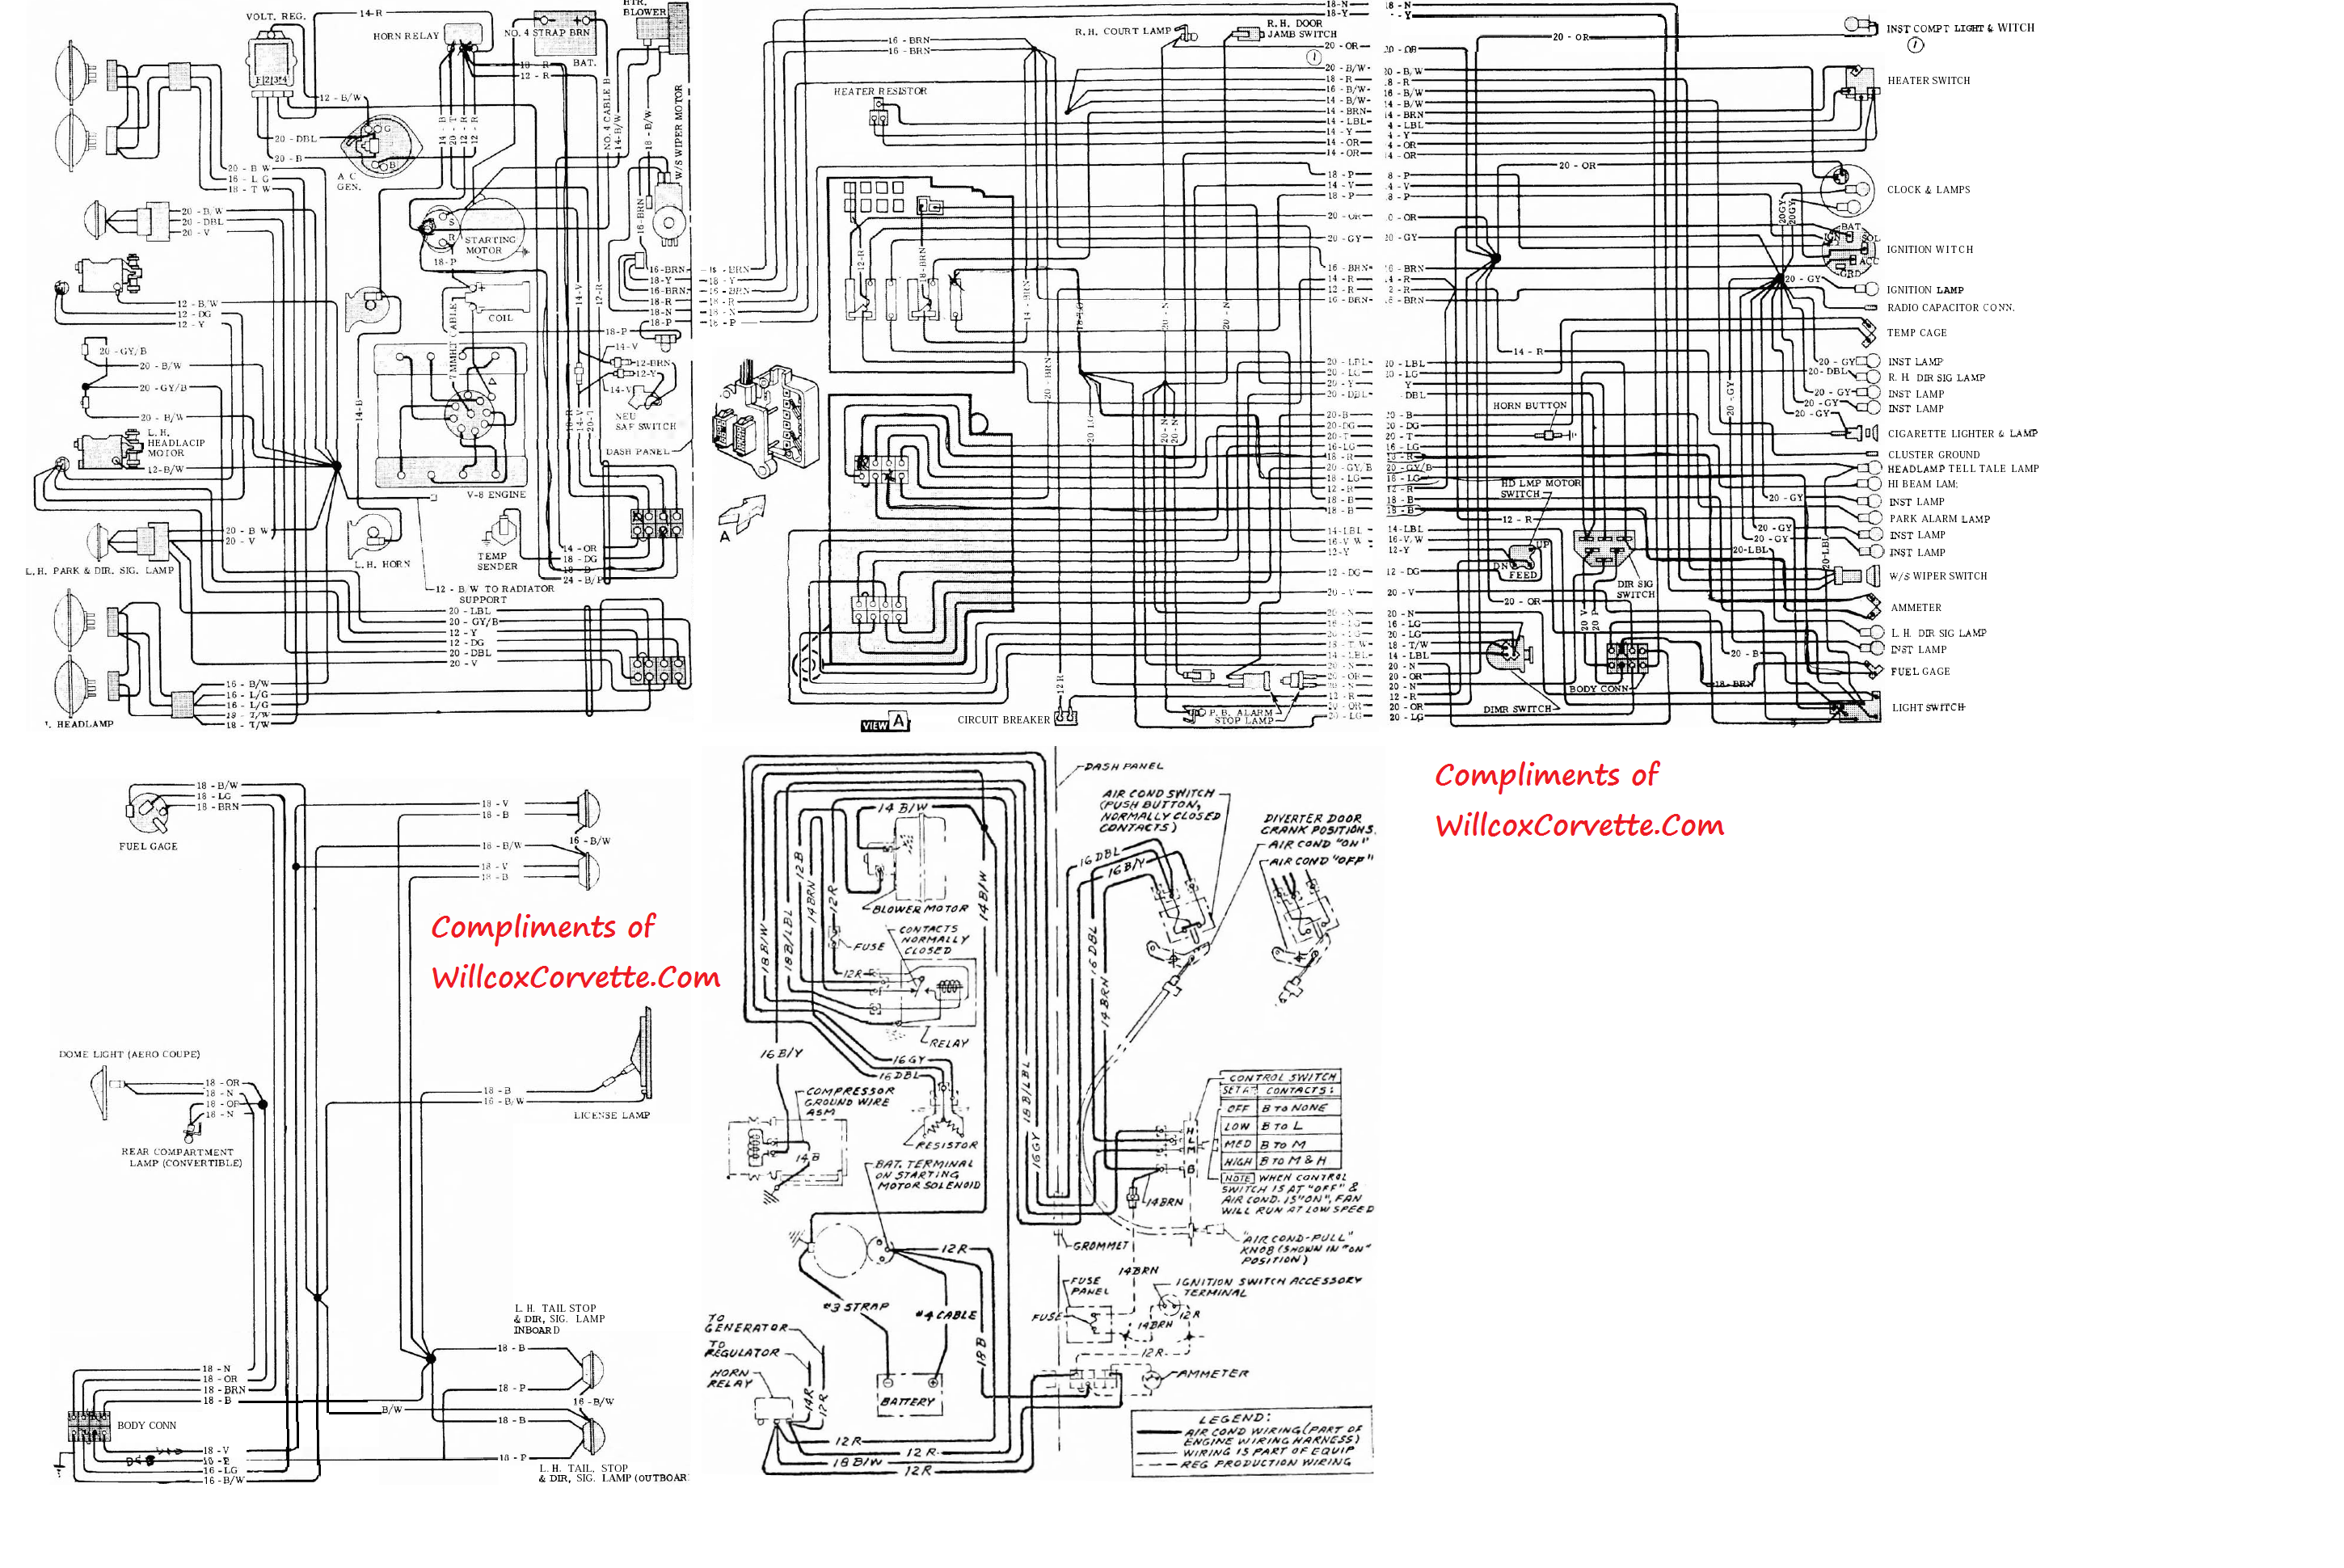 41EC7 Jiuh Dah Electric Motor Wiring Diagrams | Ebook Databases4.4.4.5.1.3.4.4.2.6.9.dba.skylink.hr